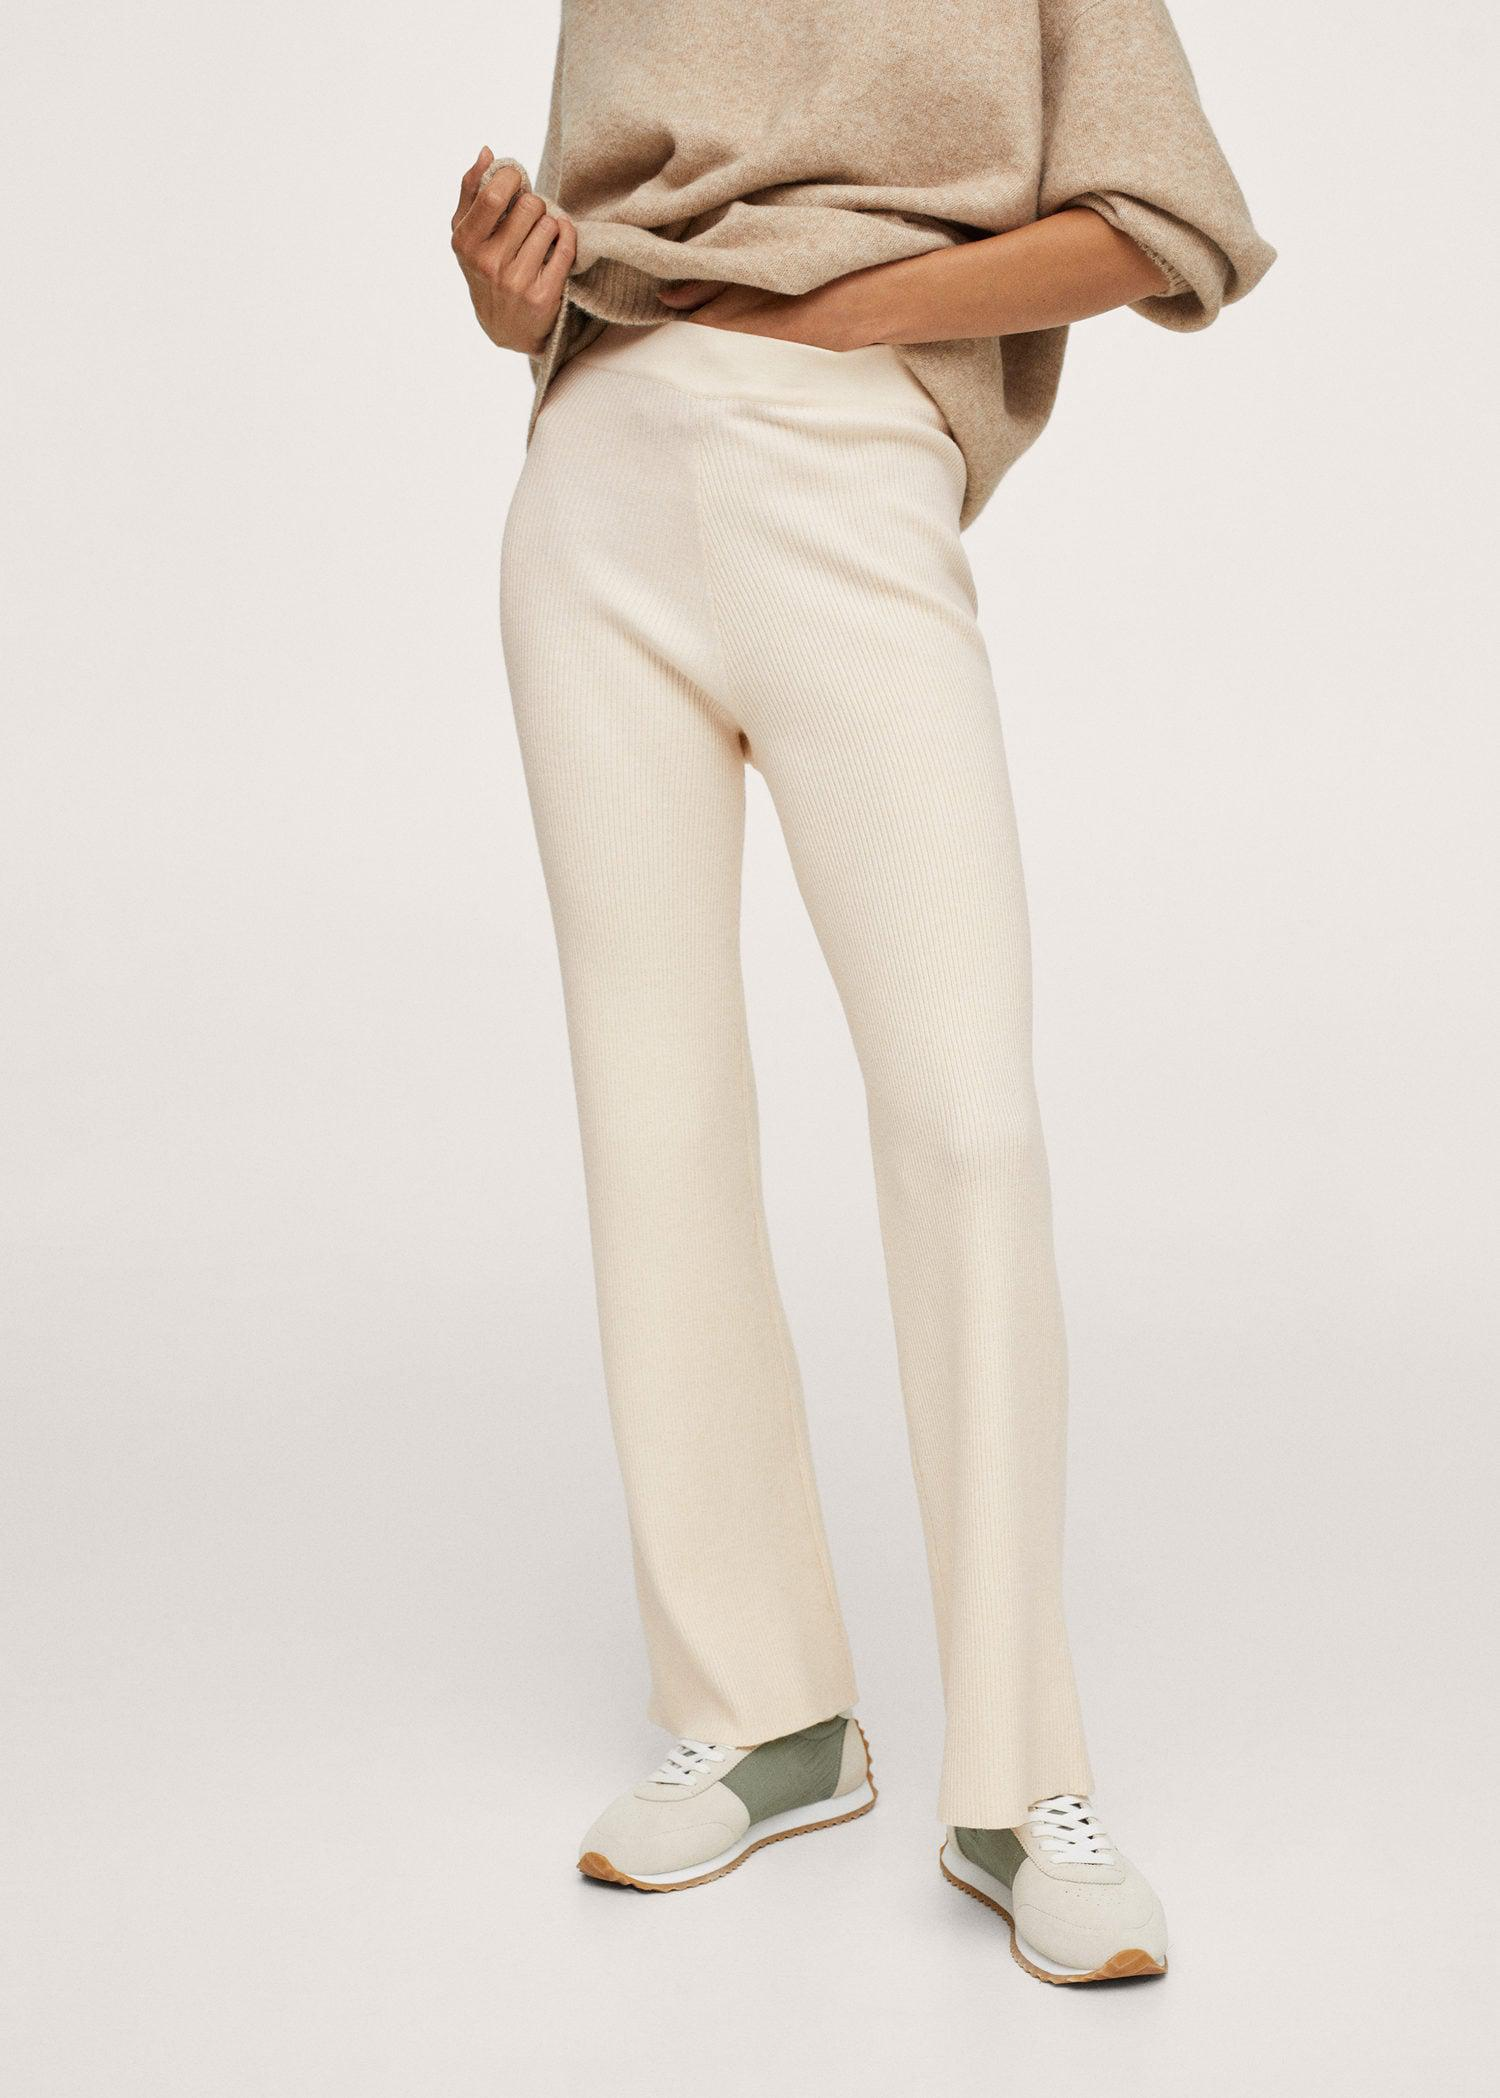 Ribbed pants with elastic waist